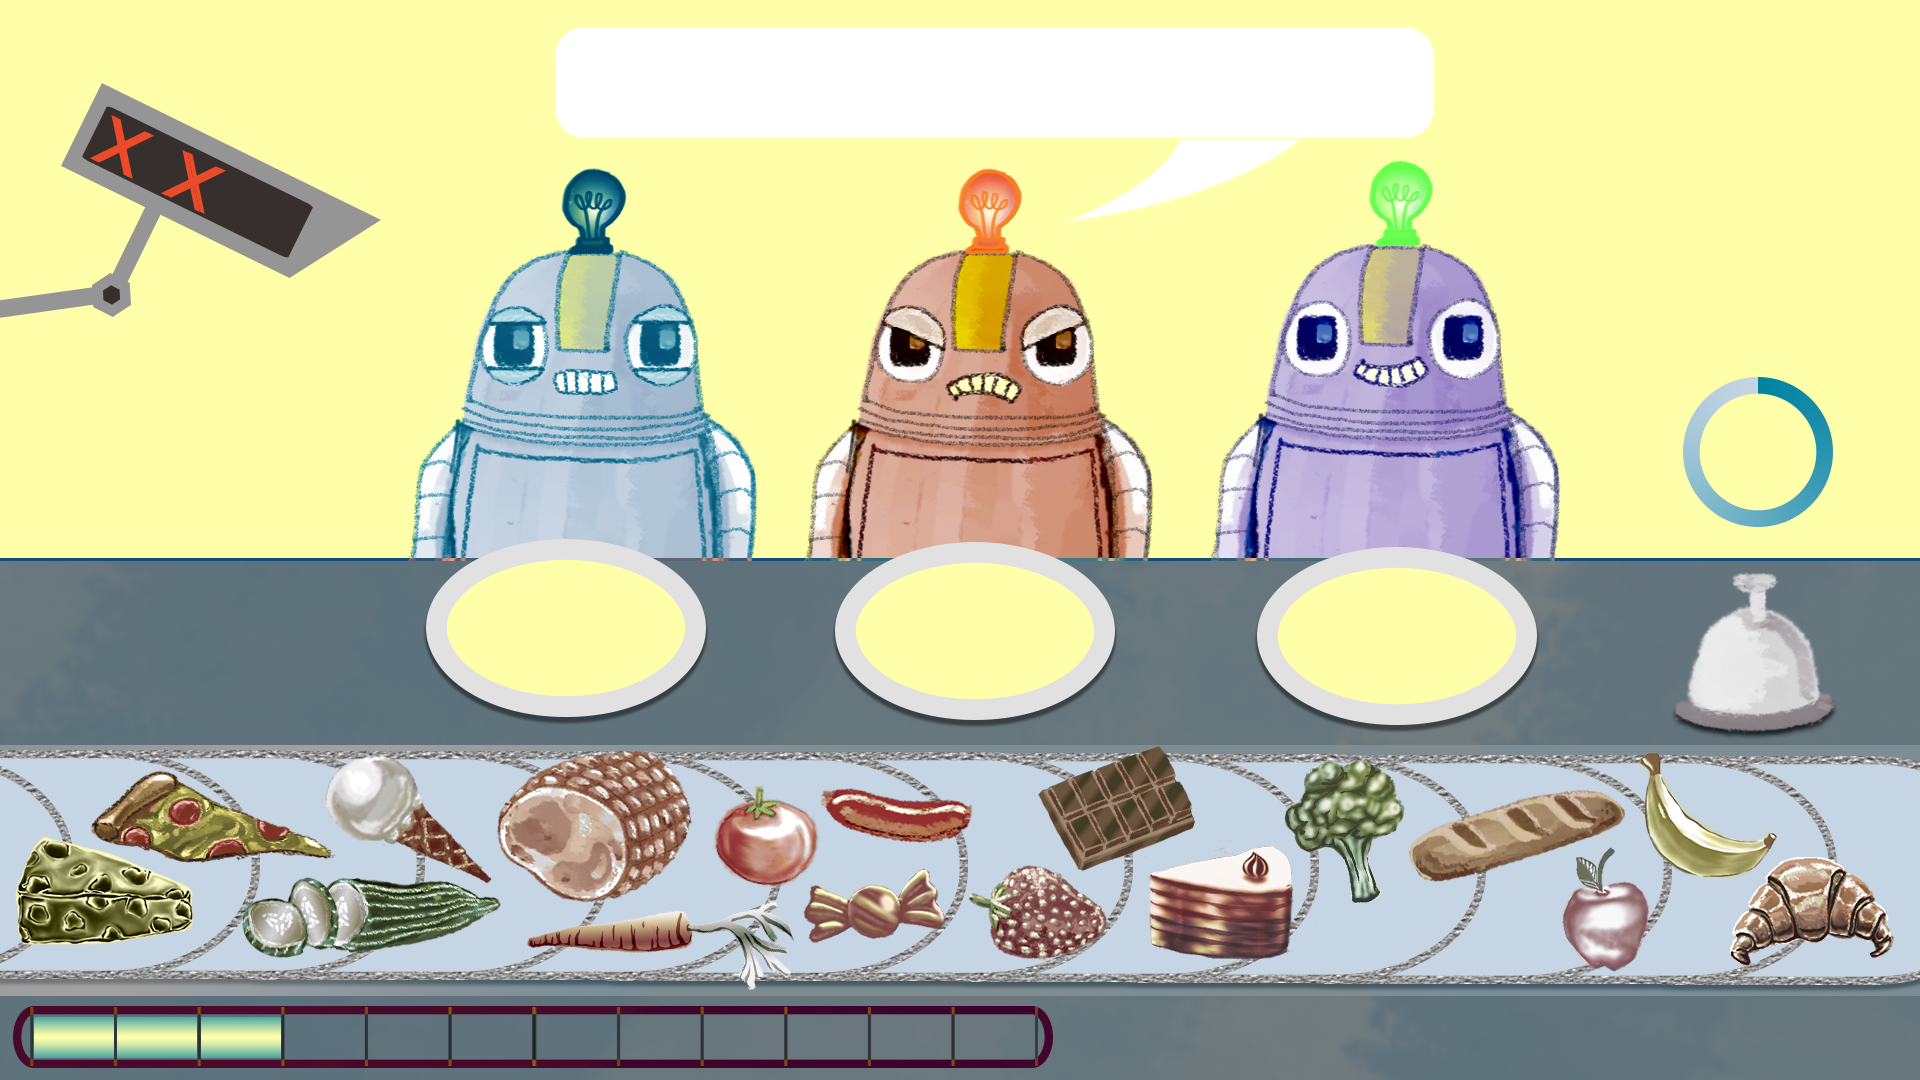 Gaming Grammar screenshot of three robots looking at a conveyor belt filled with different food items